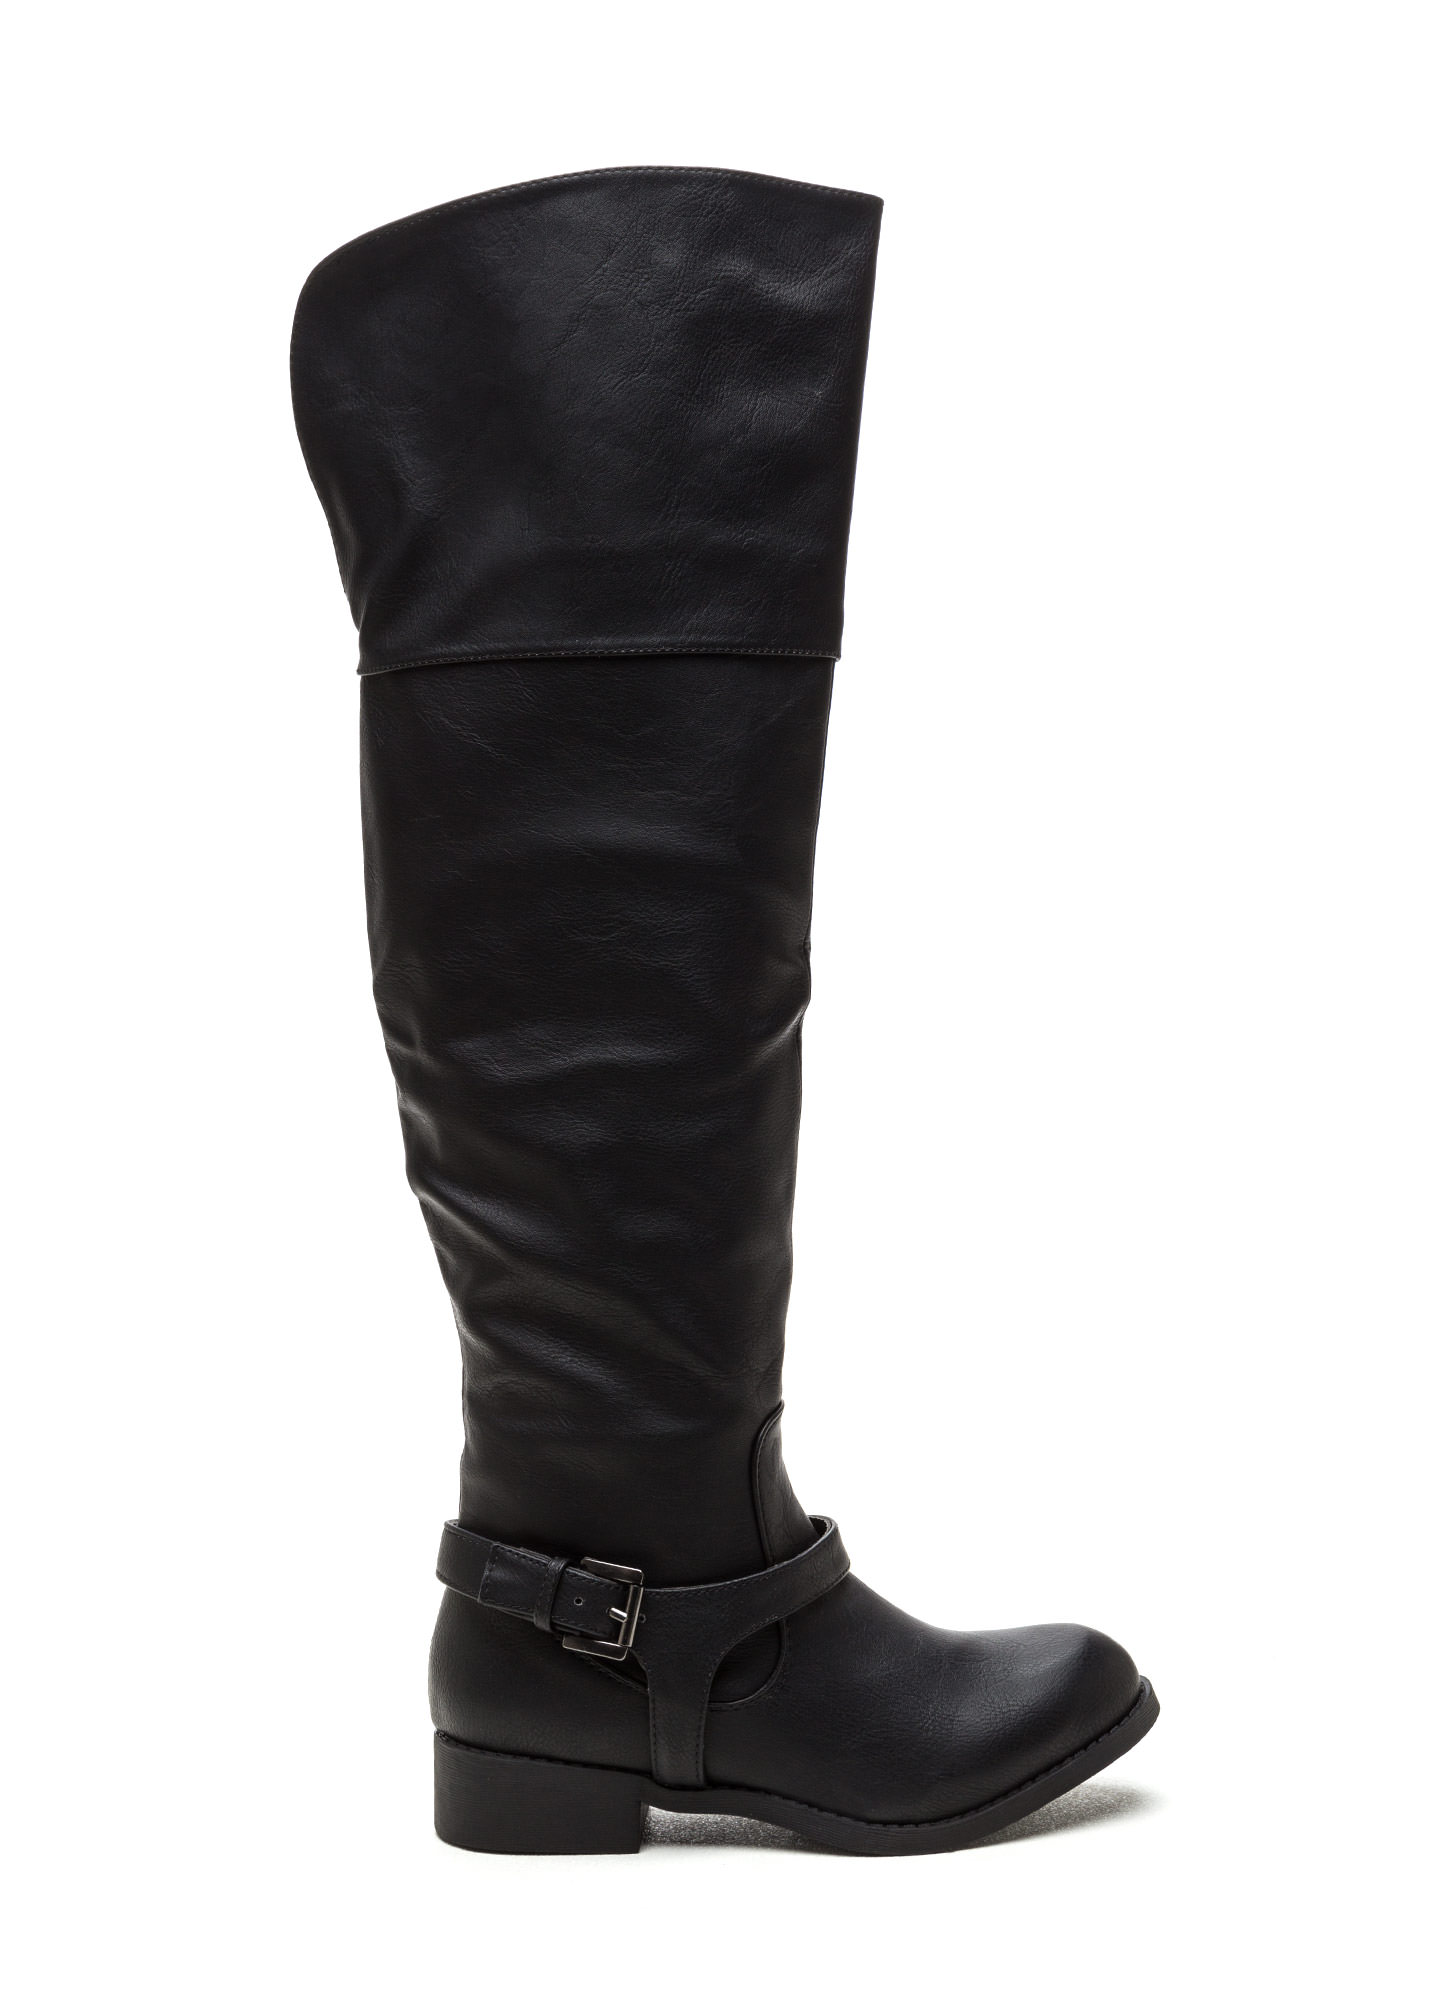 Harness Your Talents Thigh-High Boots BLACK